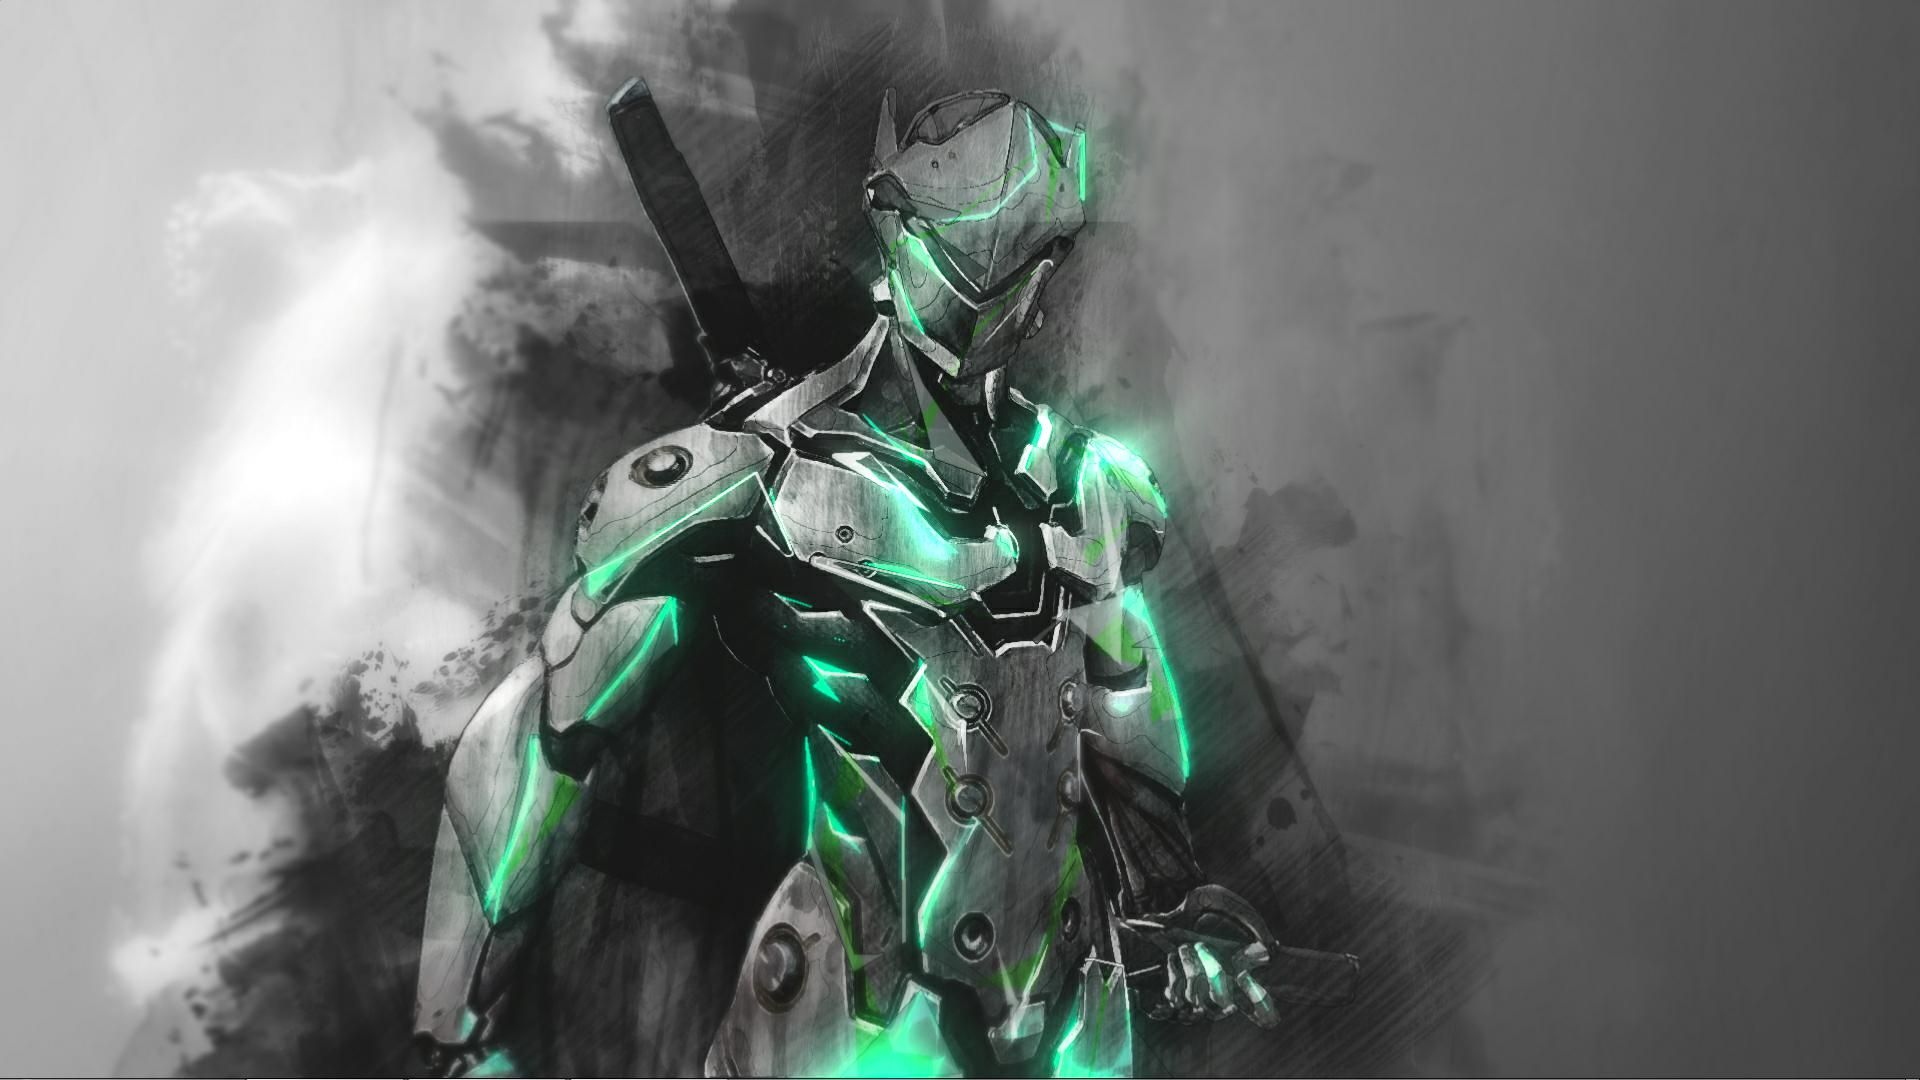 overwatch Genji wallpaper for Wallpaper Engine | Wallpapers for Wallpaper Engine